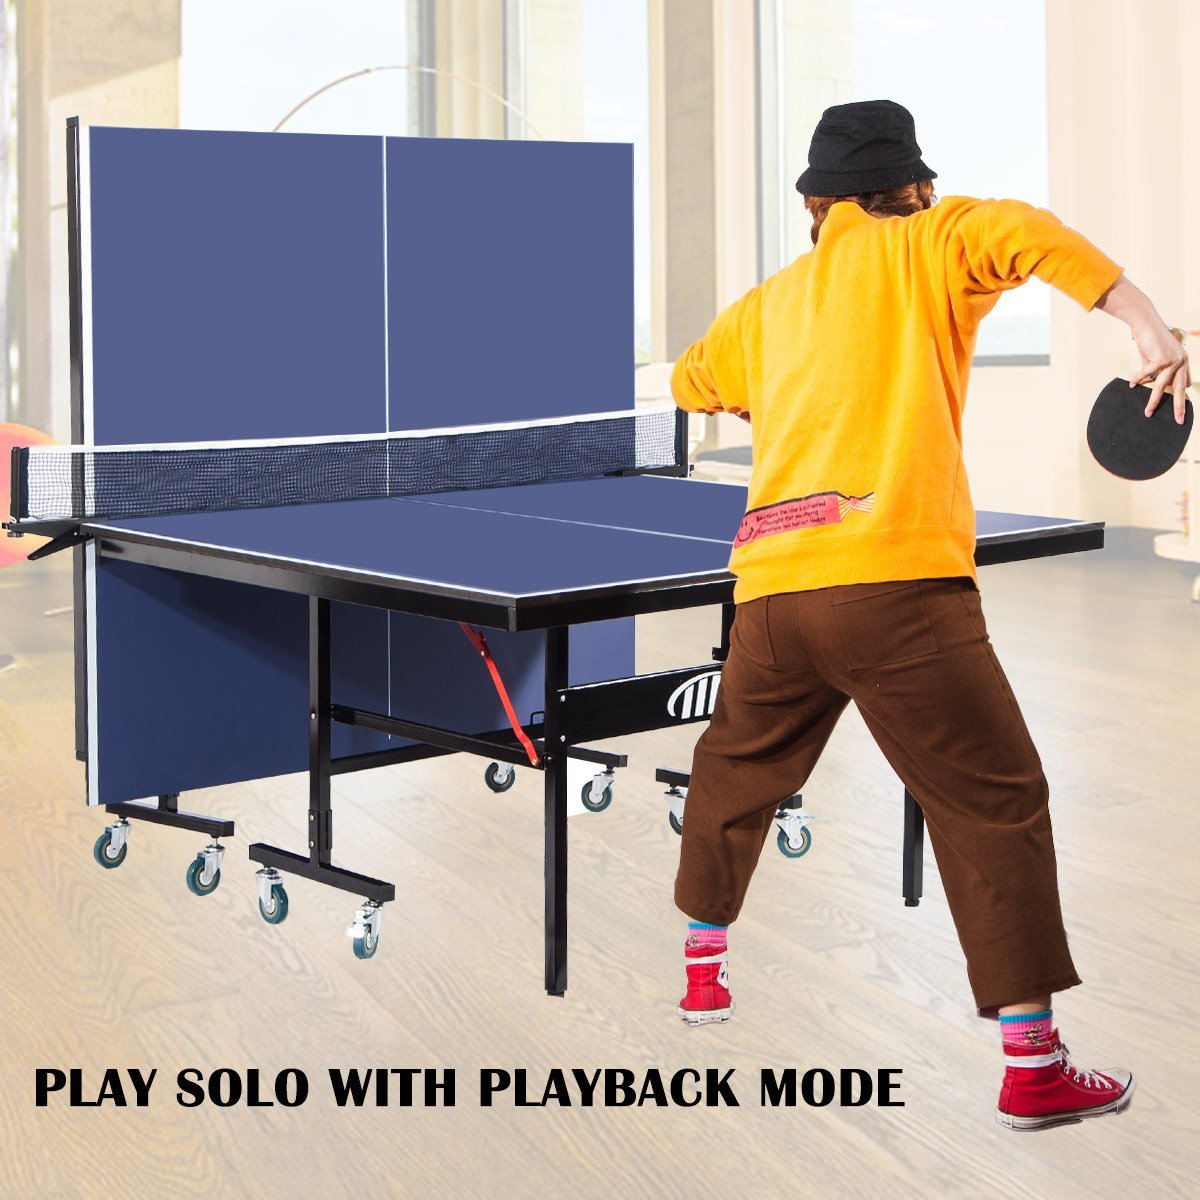 4af2df1e122 Merax Foldable Table Tennis Table with Net Set and Locking Wheels -  Walmart.com